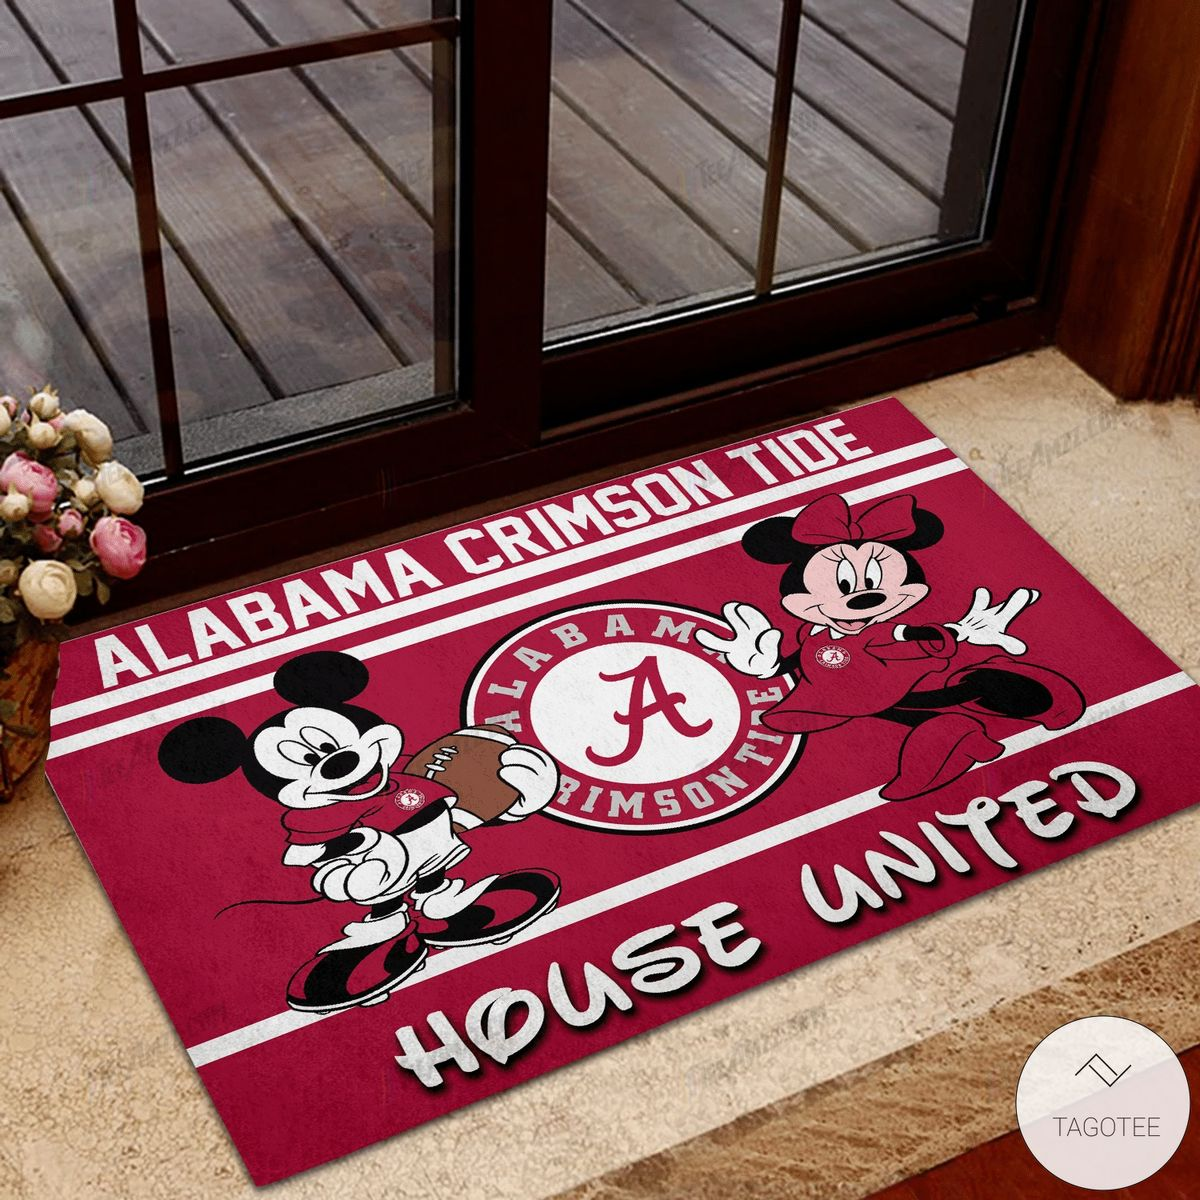 Alabama Crimson Tide House United Mickey Mouse And Minnie Mouse Doormat